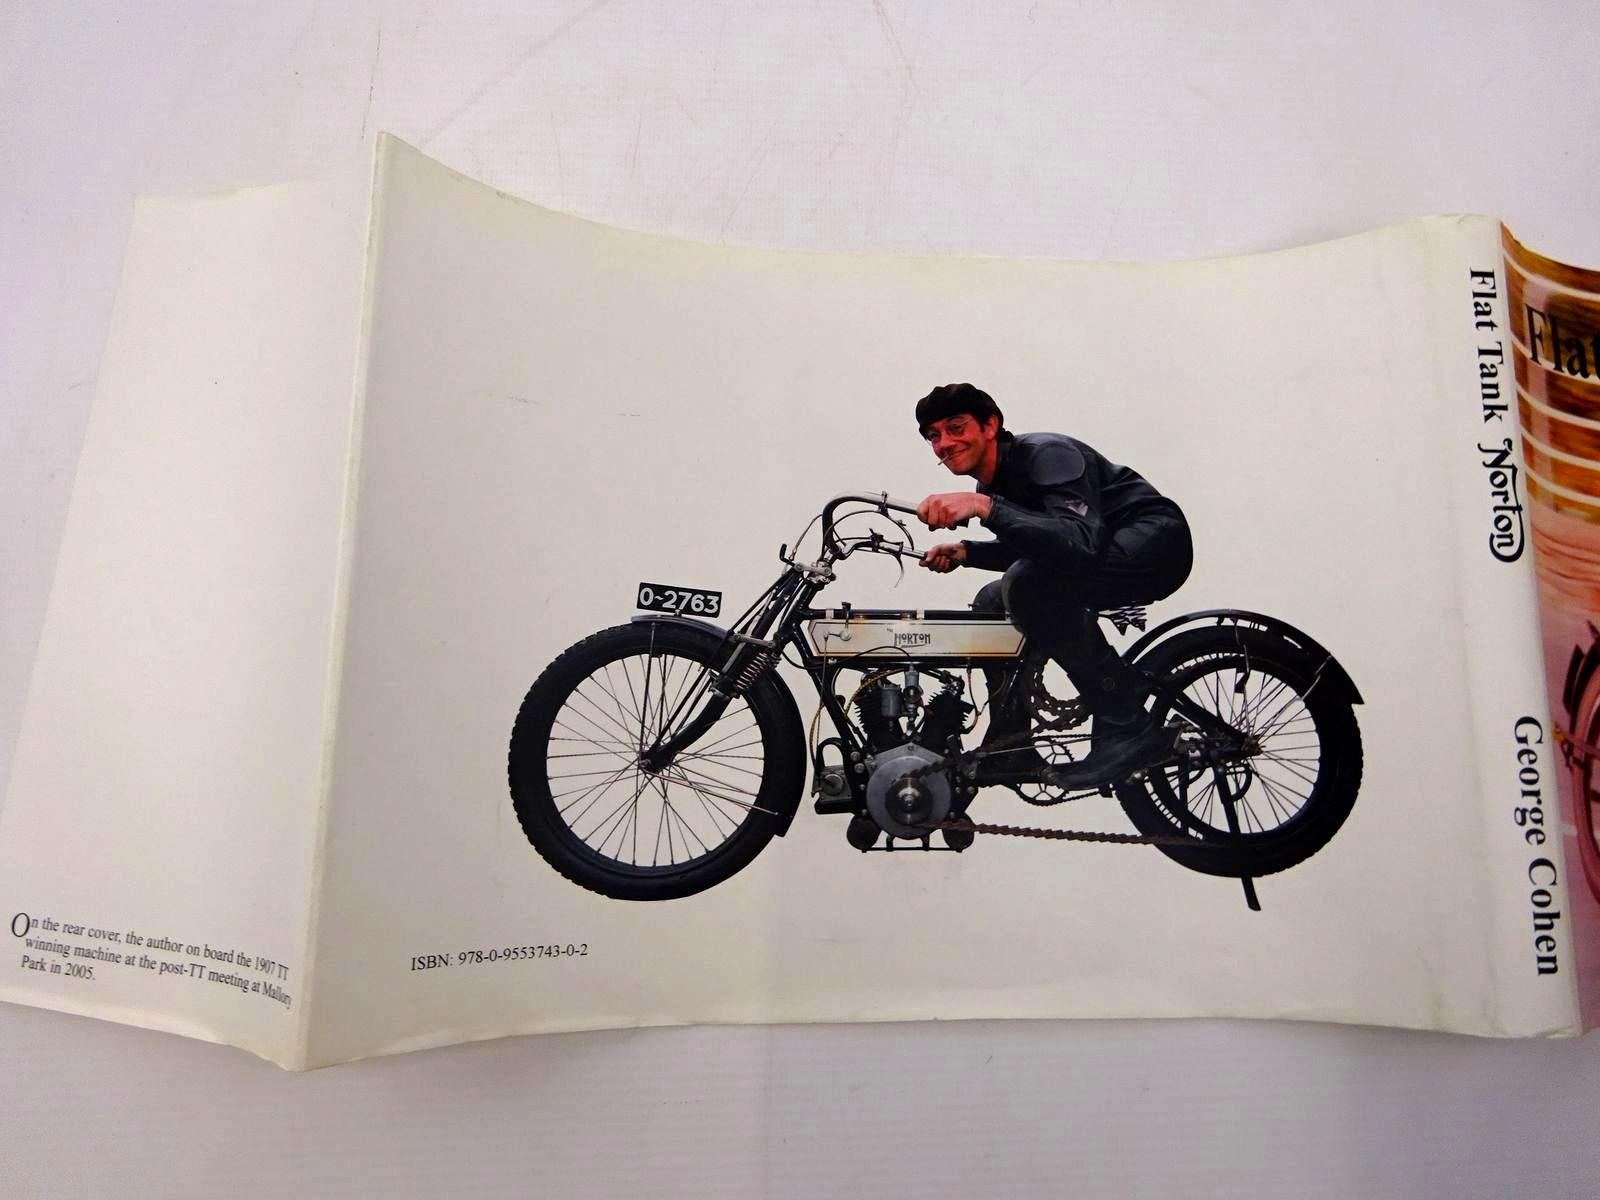 Photo of FLAT TANK NORTON written by Cohen, George published by Norton George Publishing (STOCK CODE: 2130754)  for sale by Stella & Rose's Books